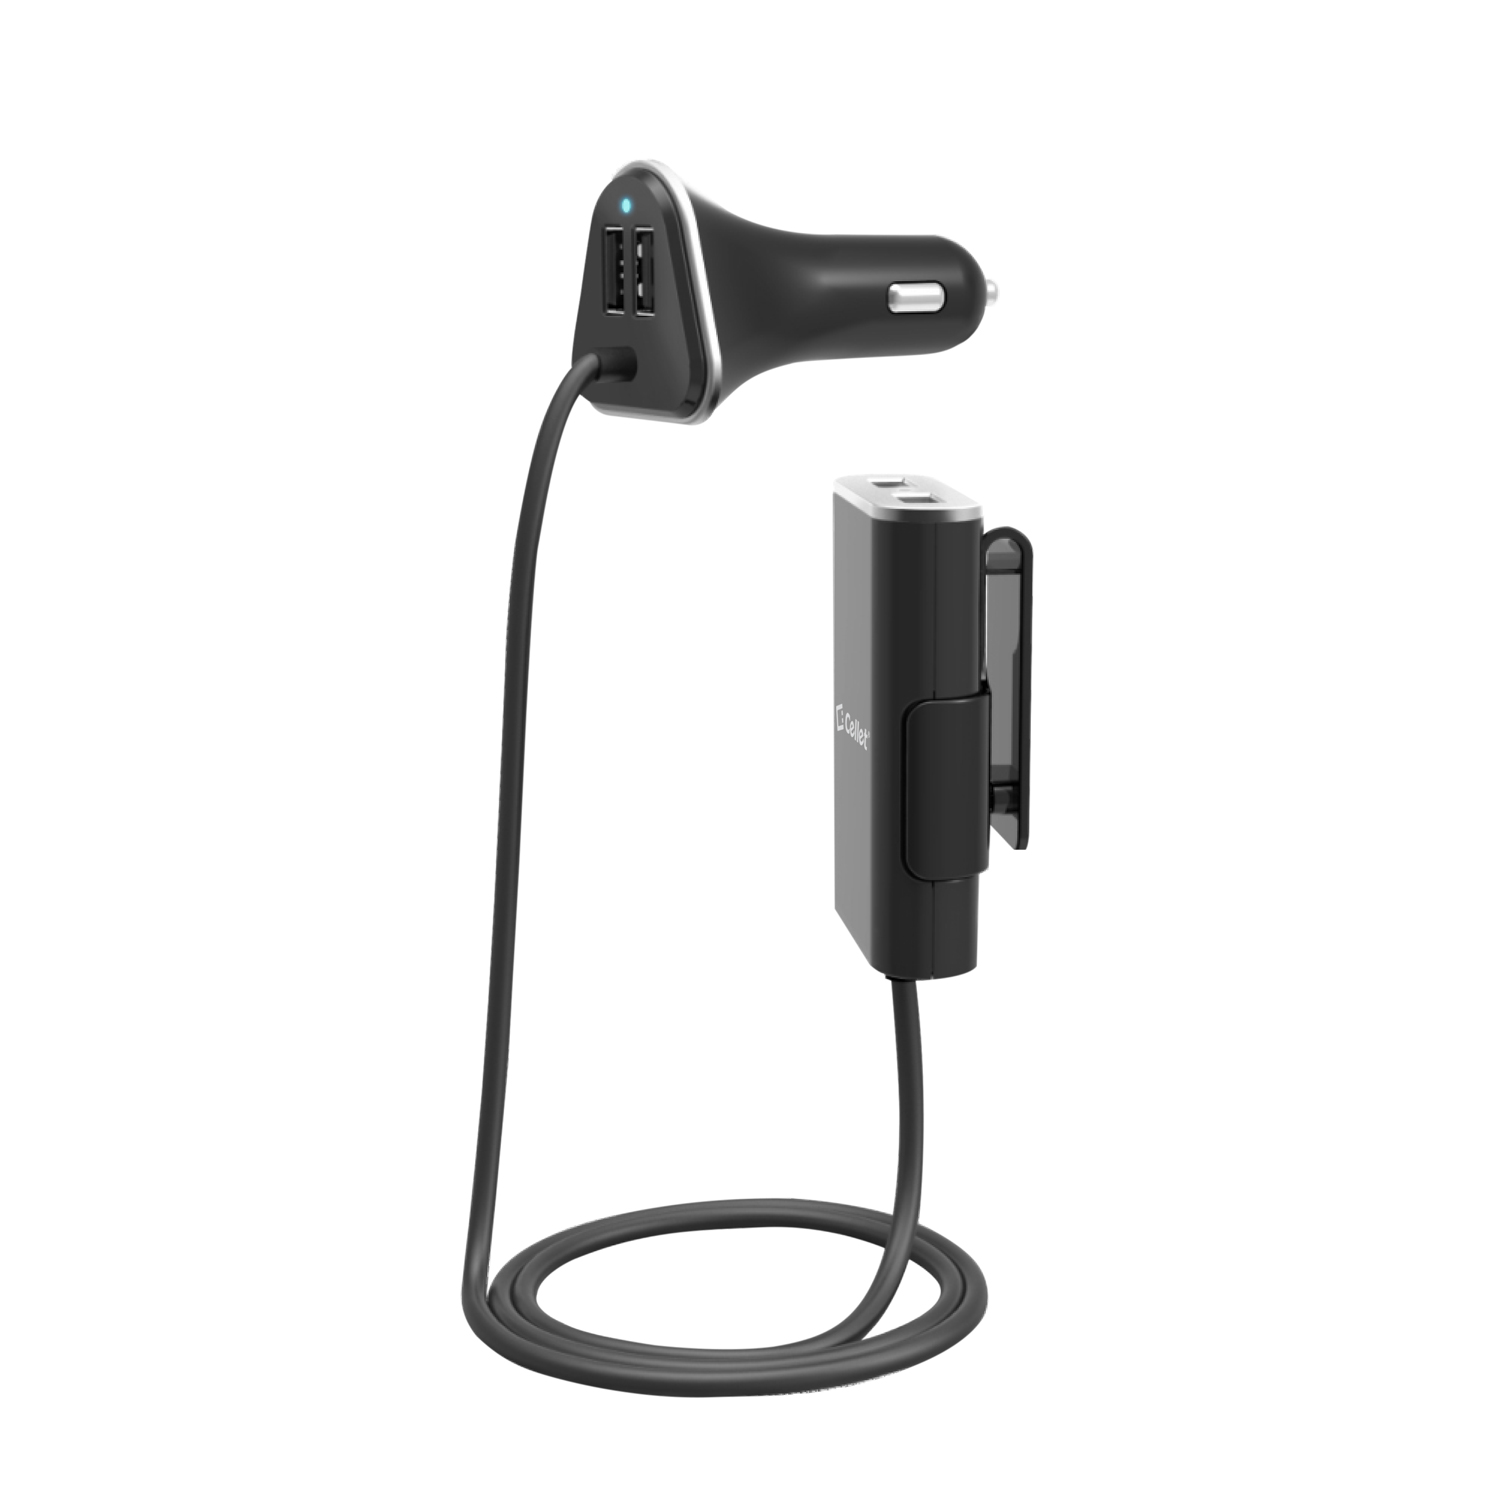 LG Saber 4 Port USB Car Charger Front Back Seat Black